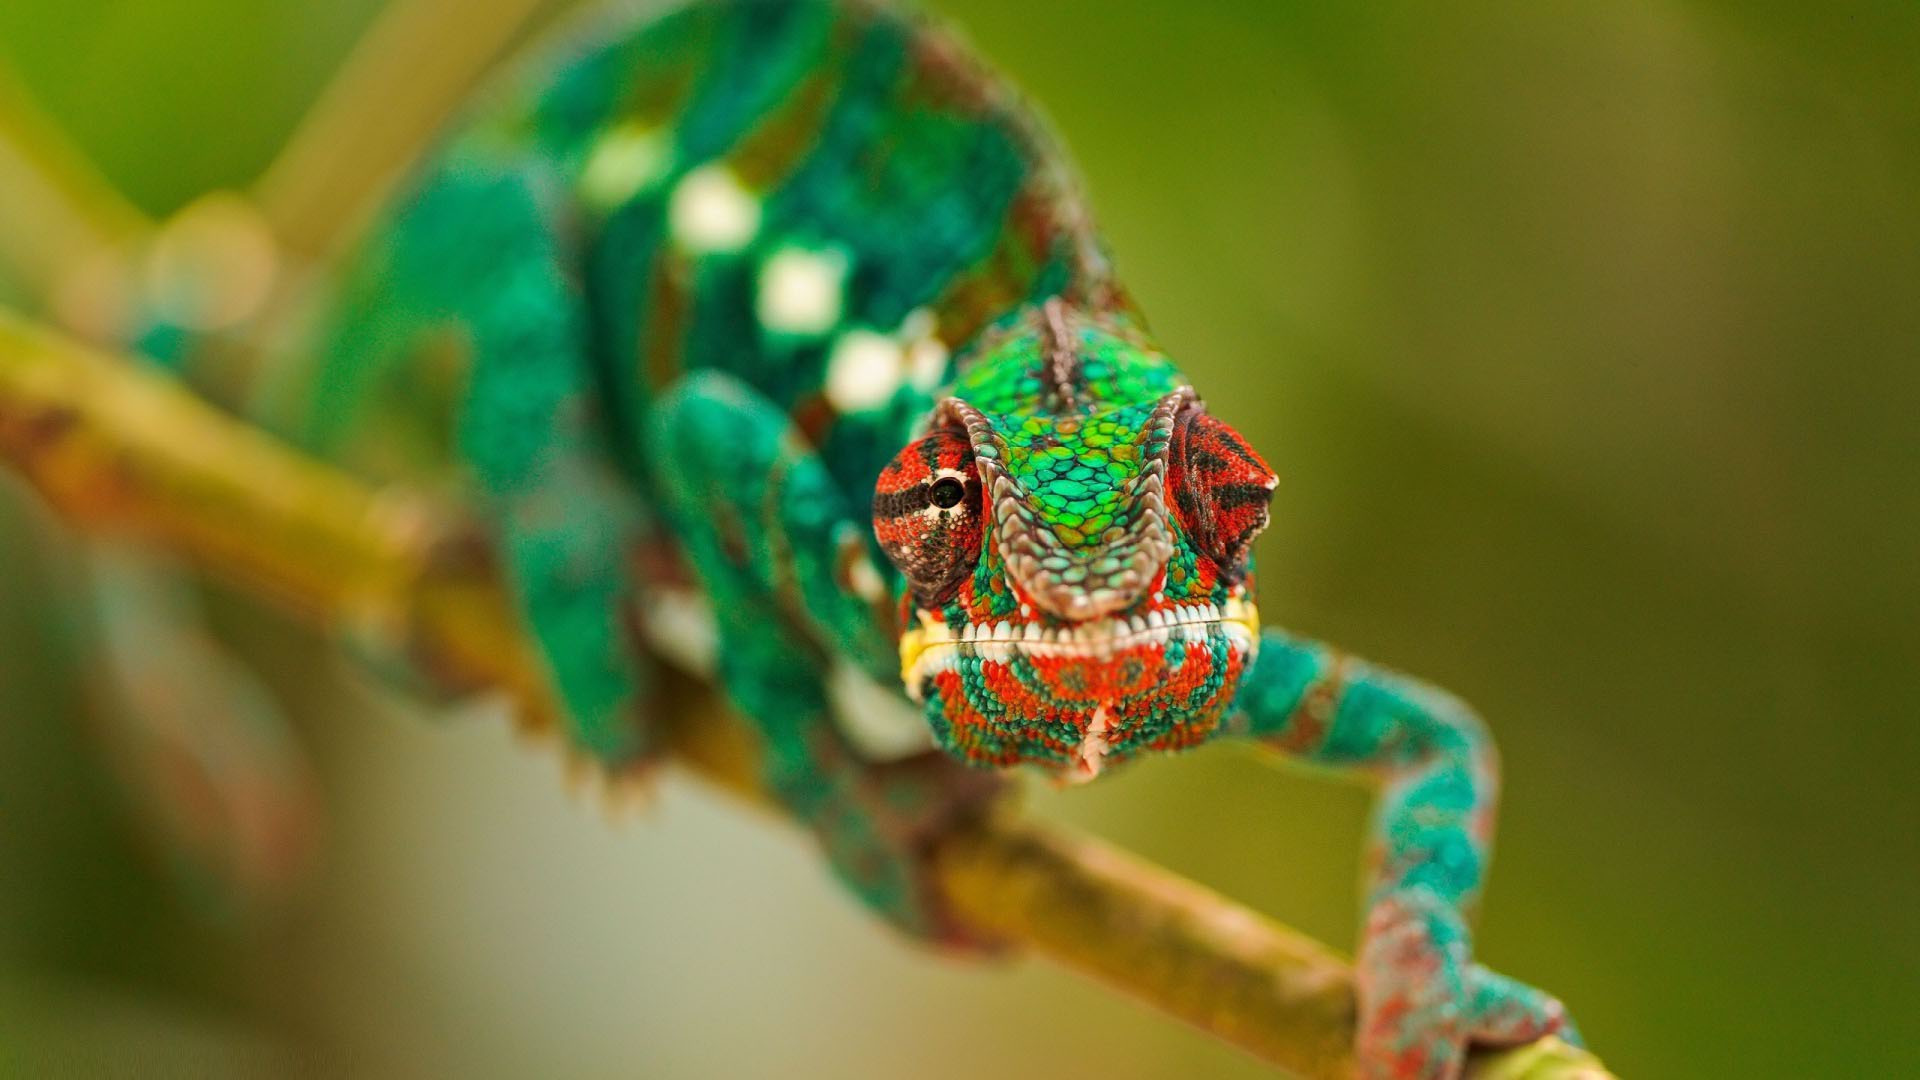 Awesome animal macro wallpaper 1920x1080 11440 - Animal 1920x1080 ...